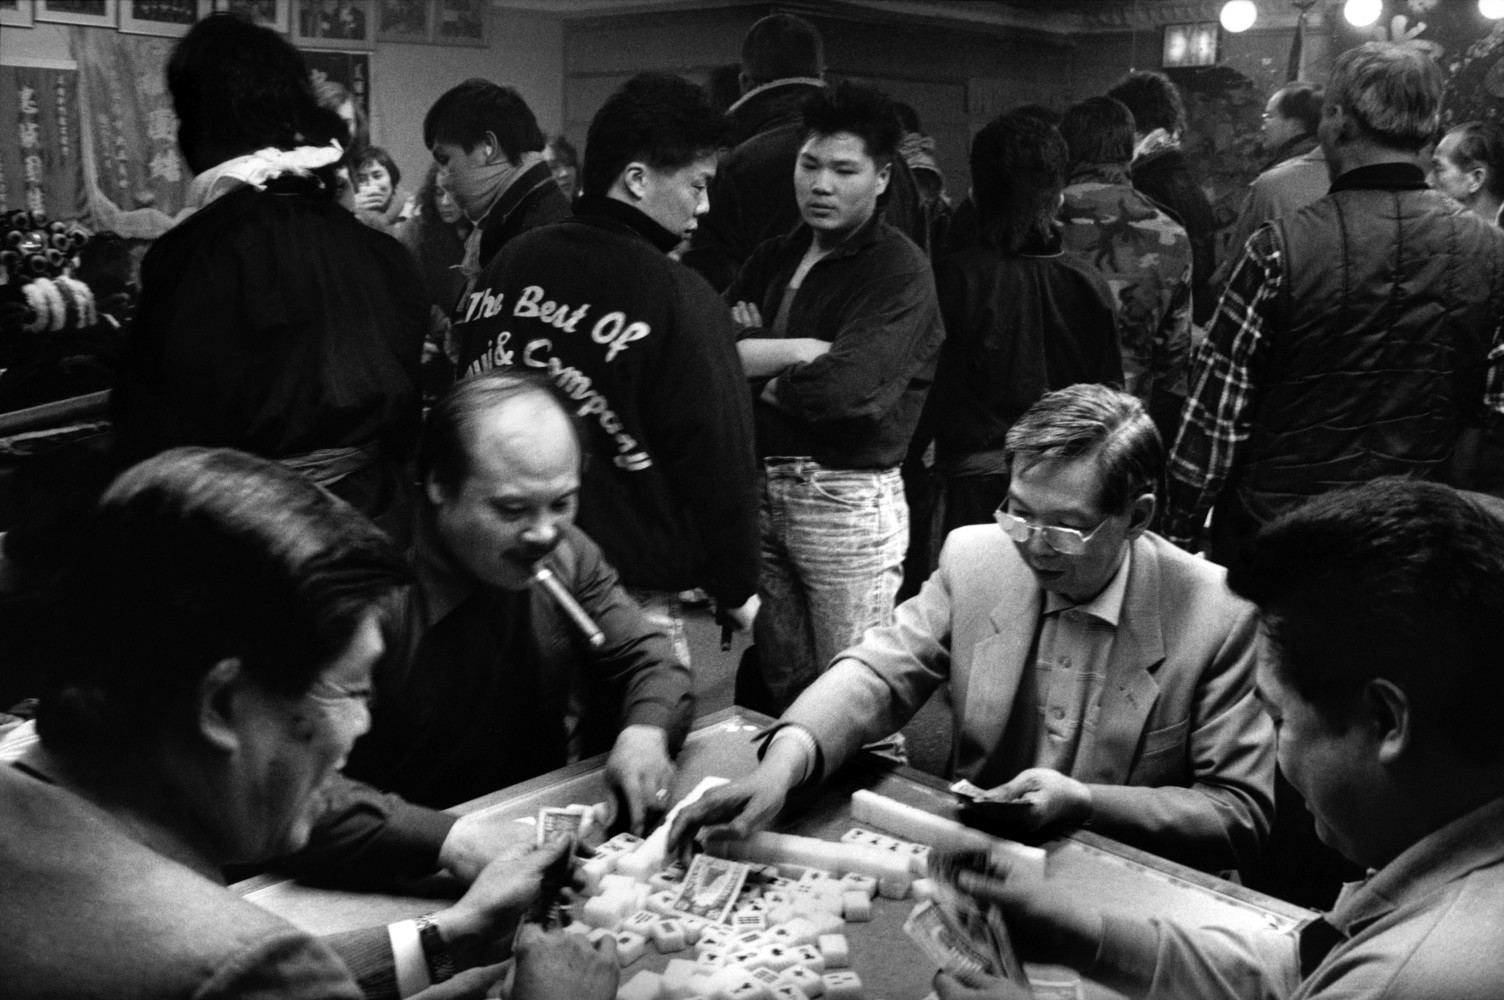 USA. New York City. 1989. Gambling in the Hung Mon Association Headquarters during the Chinese New Year. The Hung Mon (red Gang) organization is the leading power of all the Chinese Tongs in New York and directly linked to the Triads.